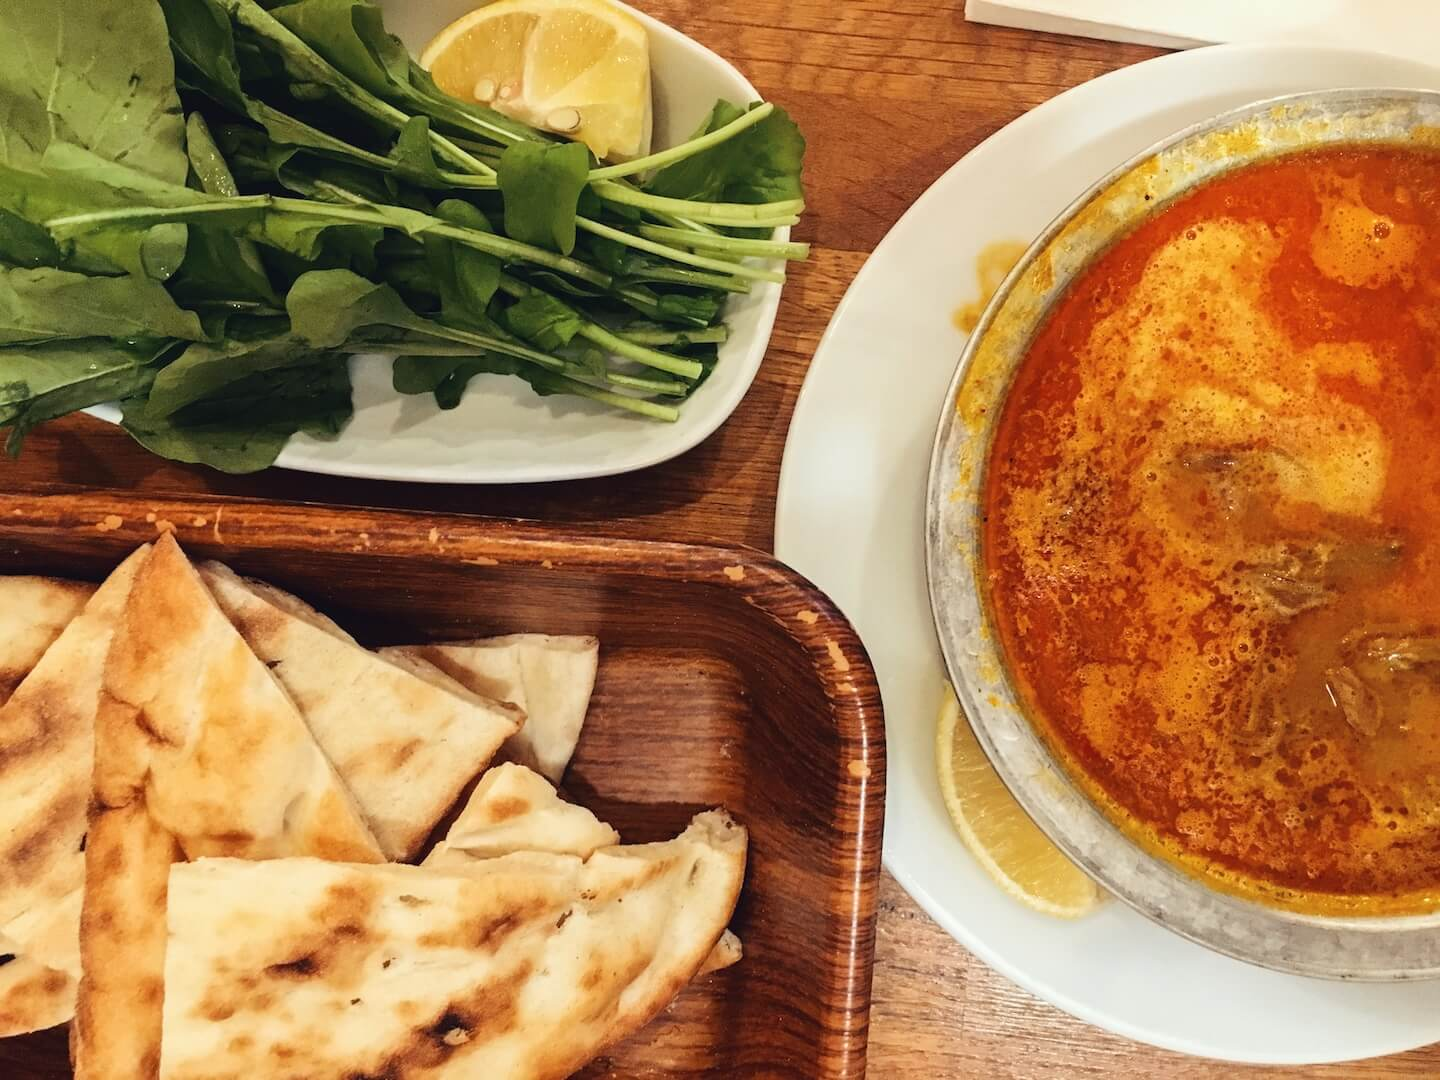 Ayik 24, Kadıköy-Moda, Where to Eat and Drink in Moda, Istanbul Food Guide